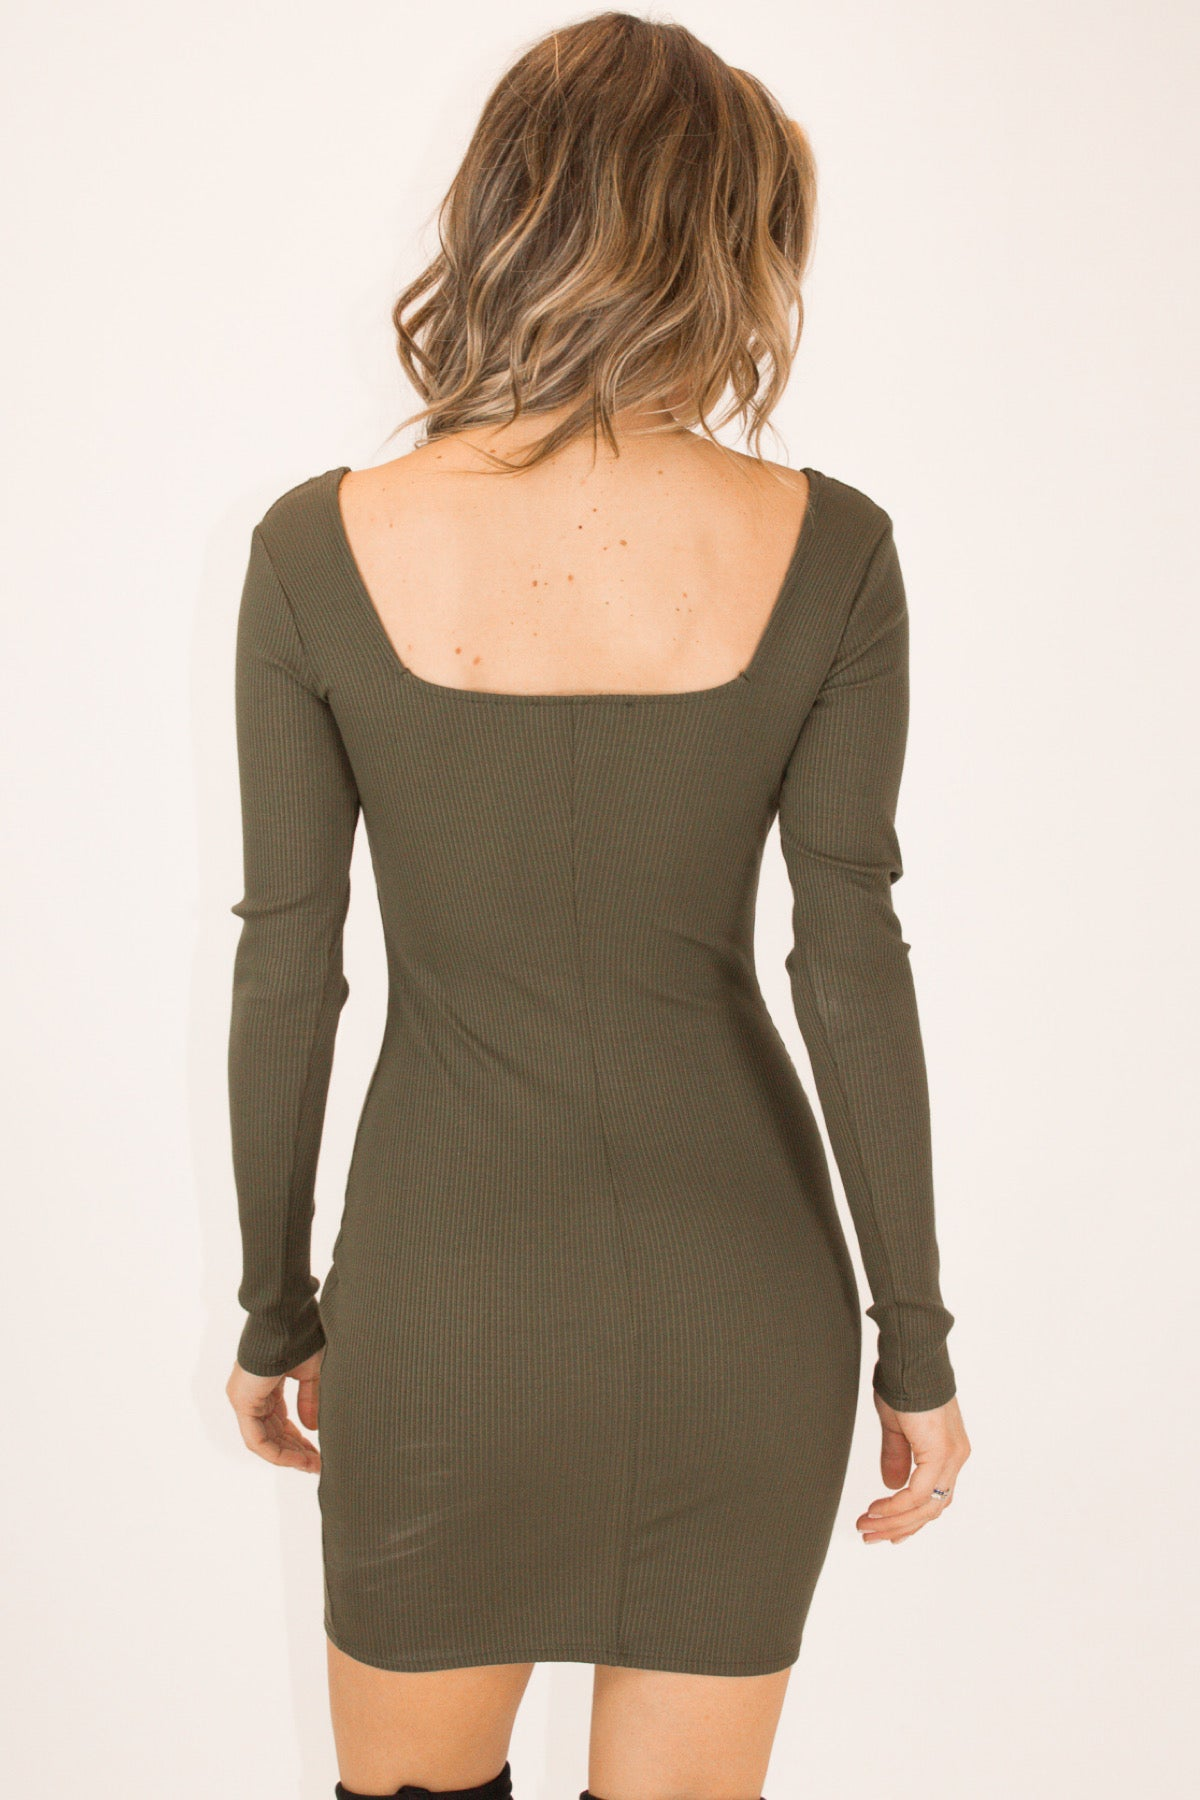 OLIVE SQUARENECK RIBBED DRESS